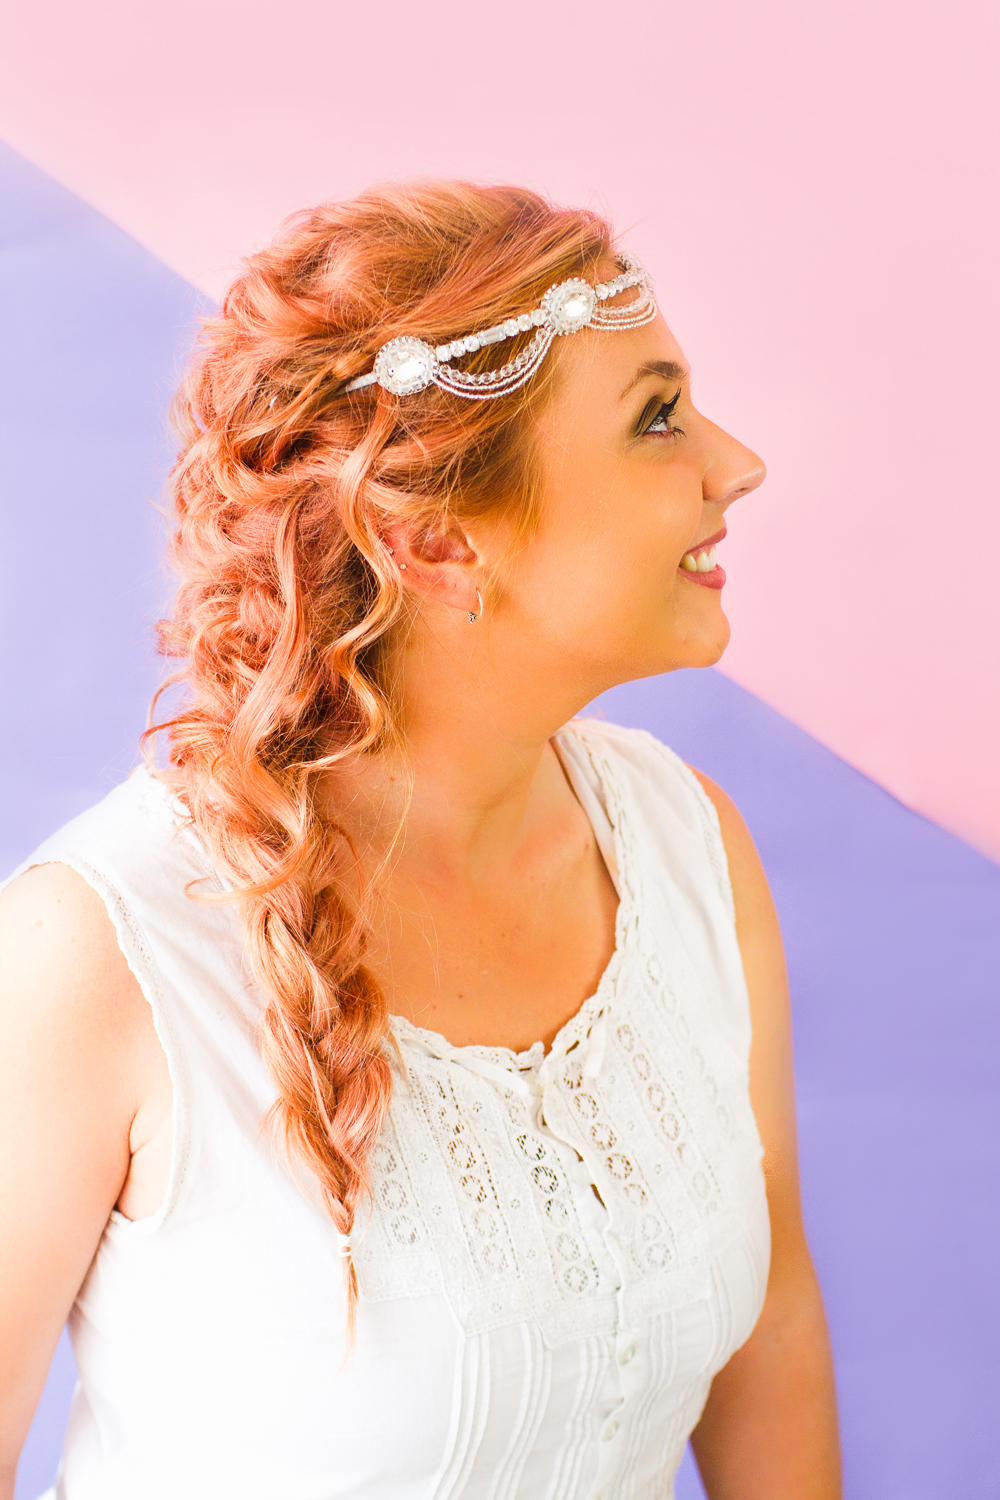 How To Wear Wedding Headband With Hairstyle Wedding In Famous Hairstyles With Fringes, End Curls And Headband (View 16 of 20)